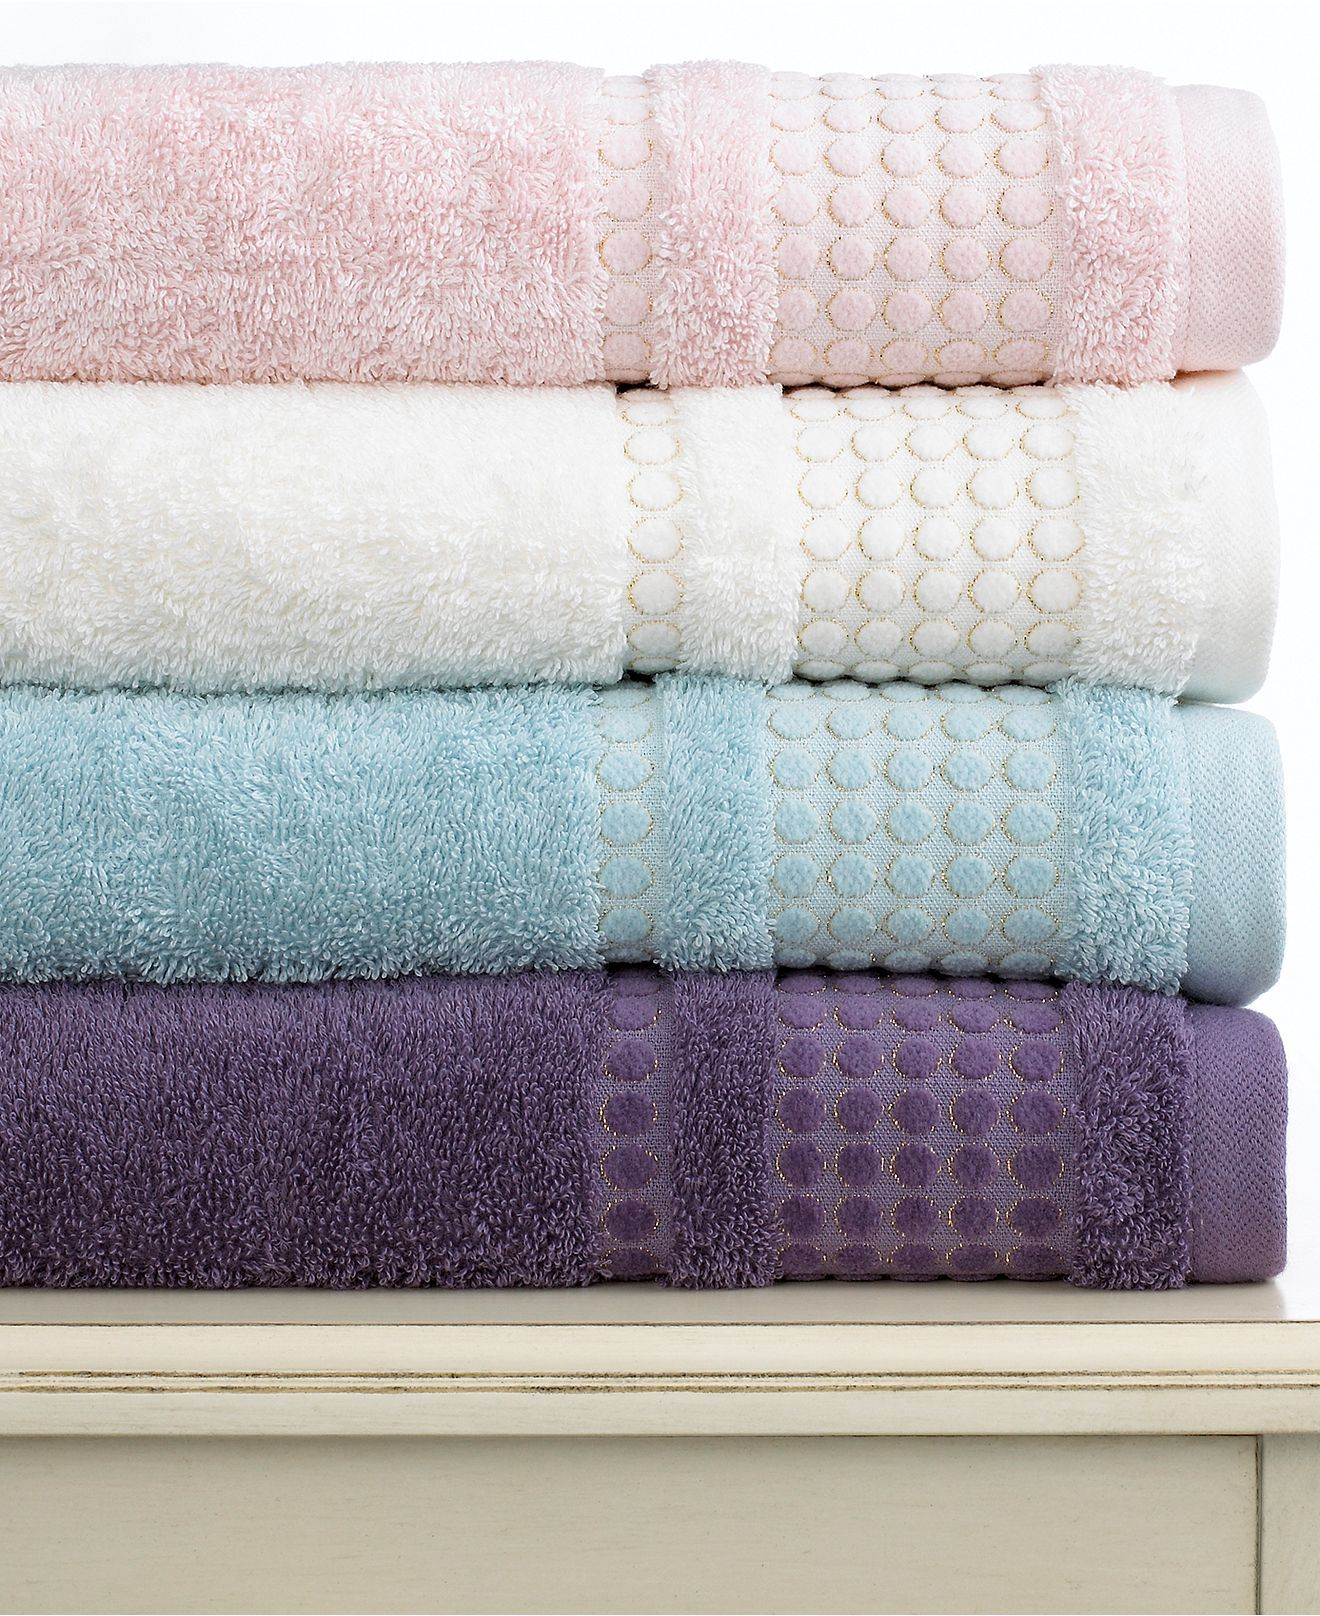 Hydrocotton Bath Towels Prepossessing Bianca Bath Towels Art Deco Collection  Bath Towels  Bed & Bath Design Inspiration